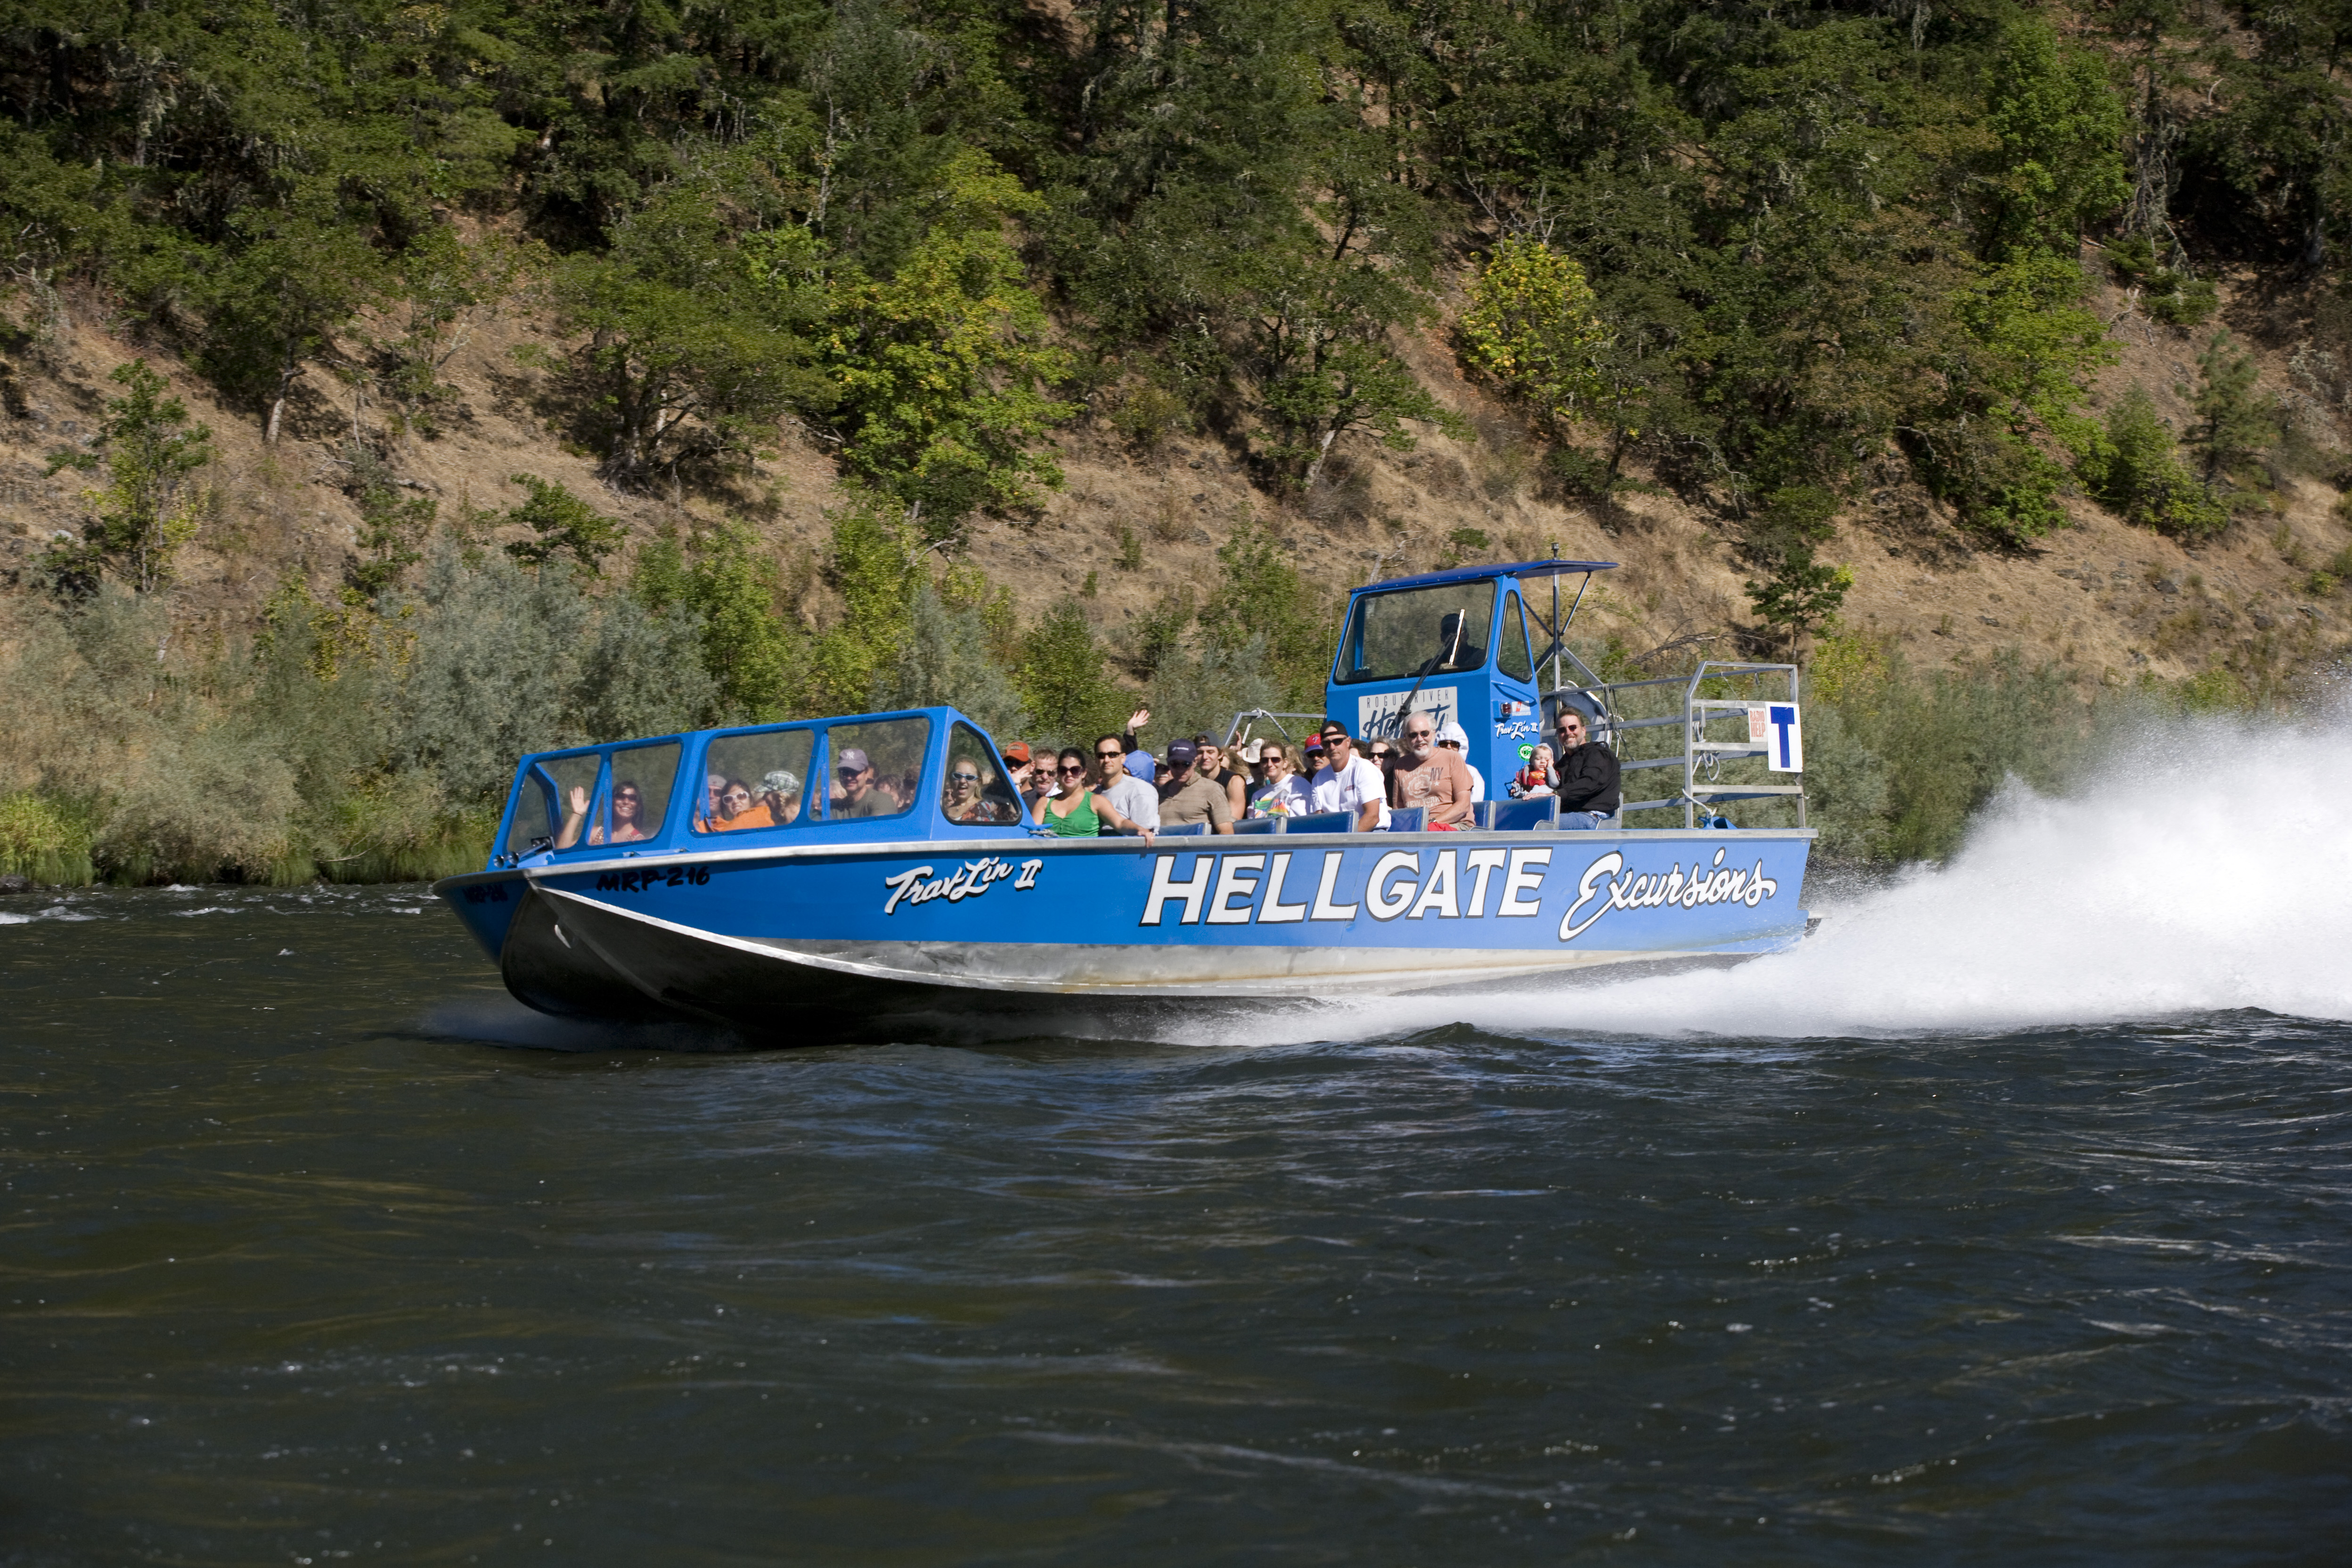 Hellgate Jet Boats, TapRock Restaurant for Best River Town Project, Grants Pass. Directed by Karen Fronek, Make it Happen